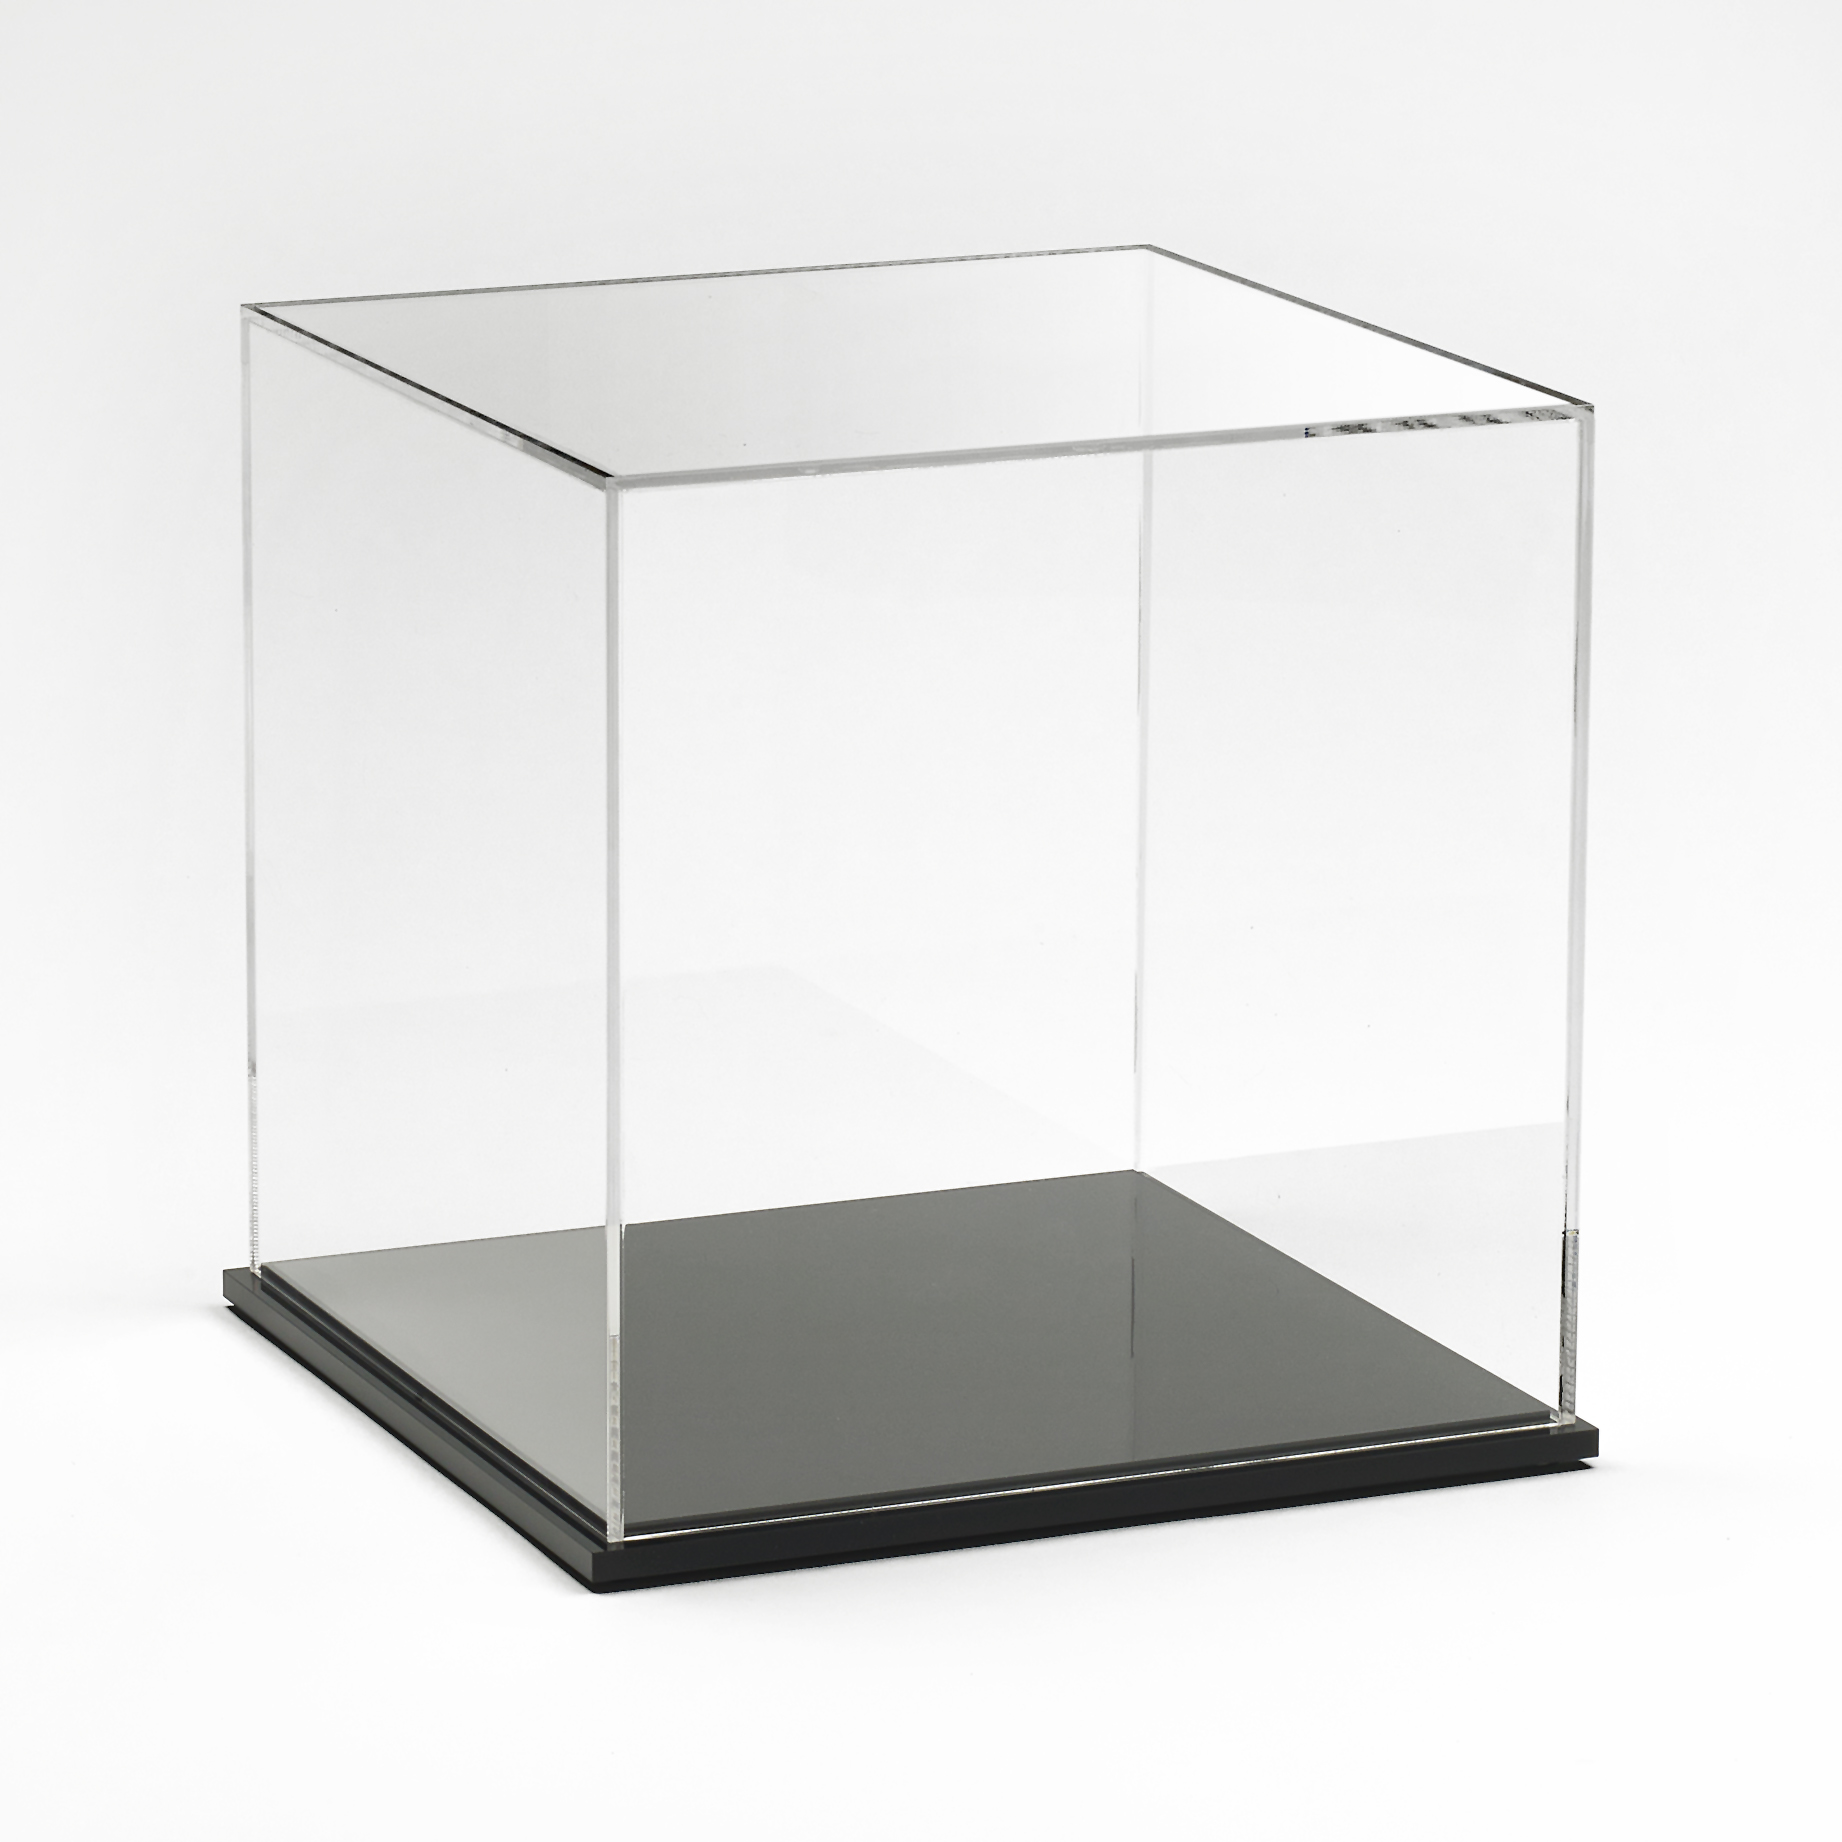 Acrylic Display Box 8 Quot X 8 Quot X 8 Quot With Black Base Buy